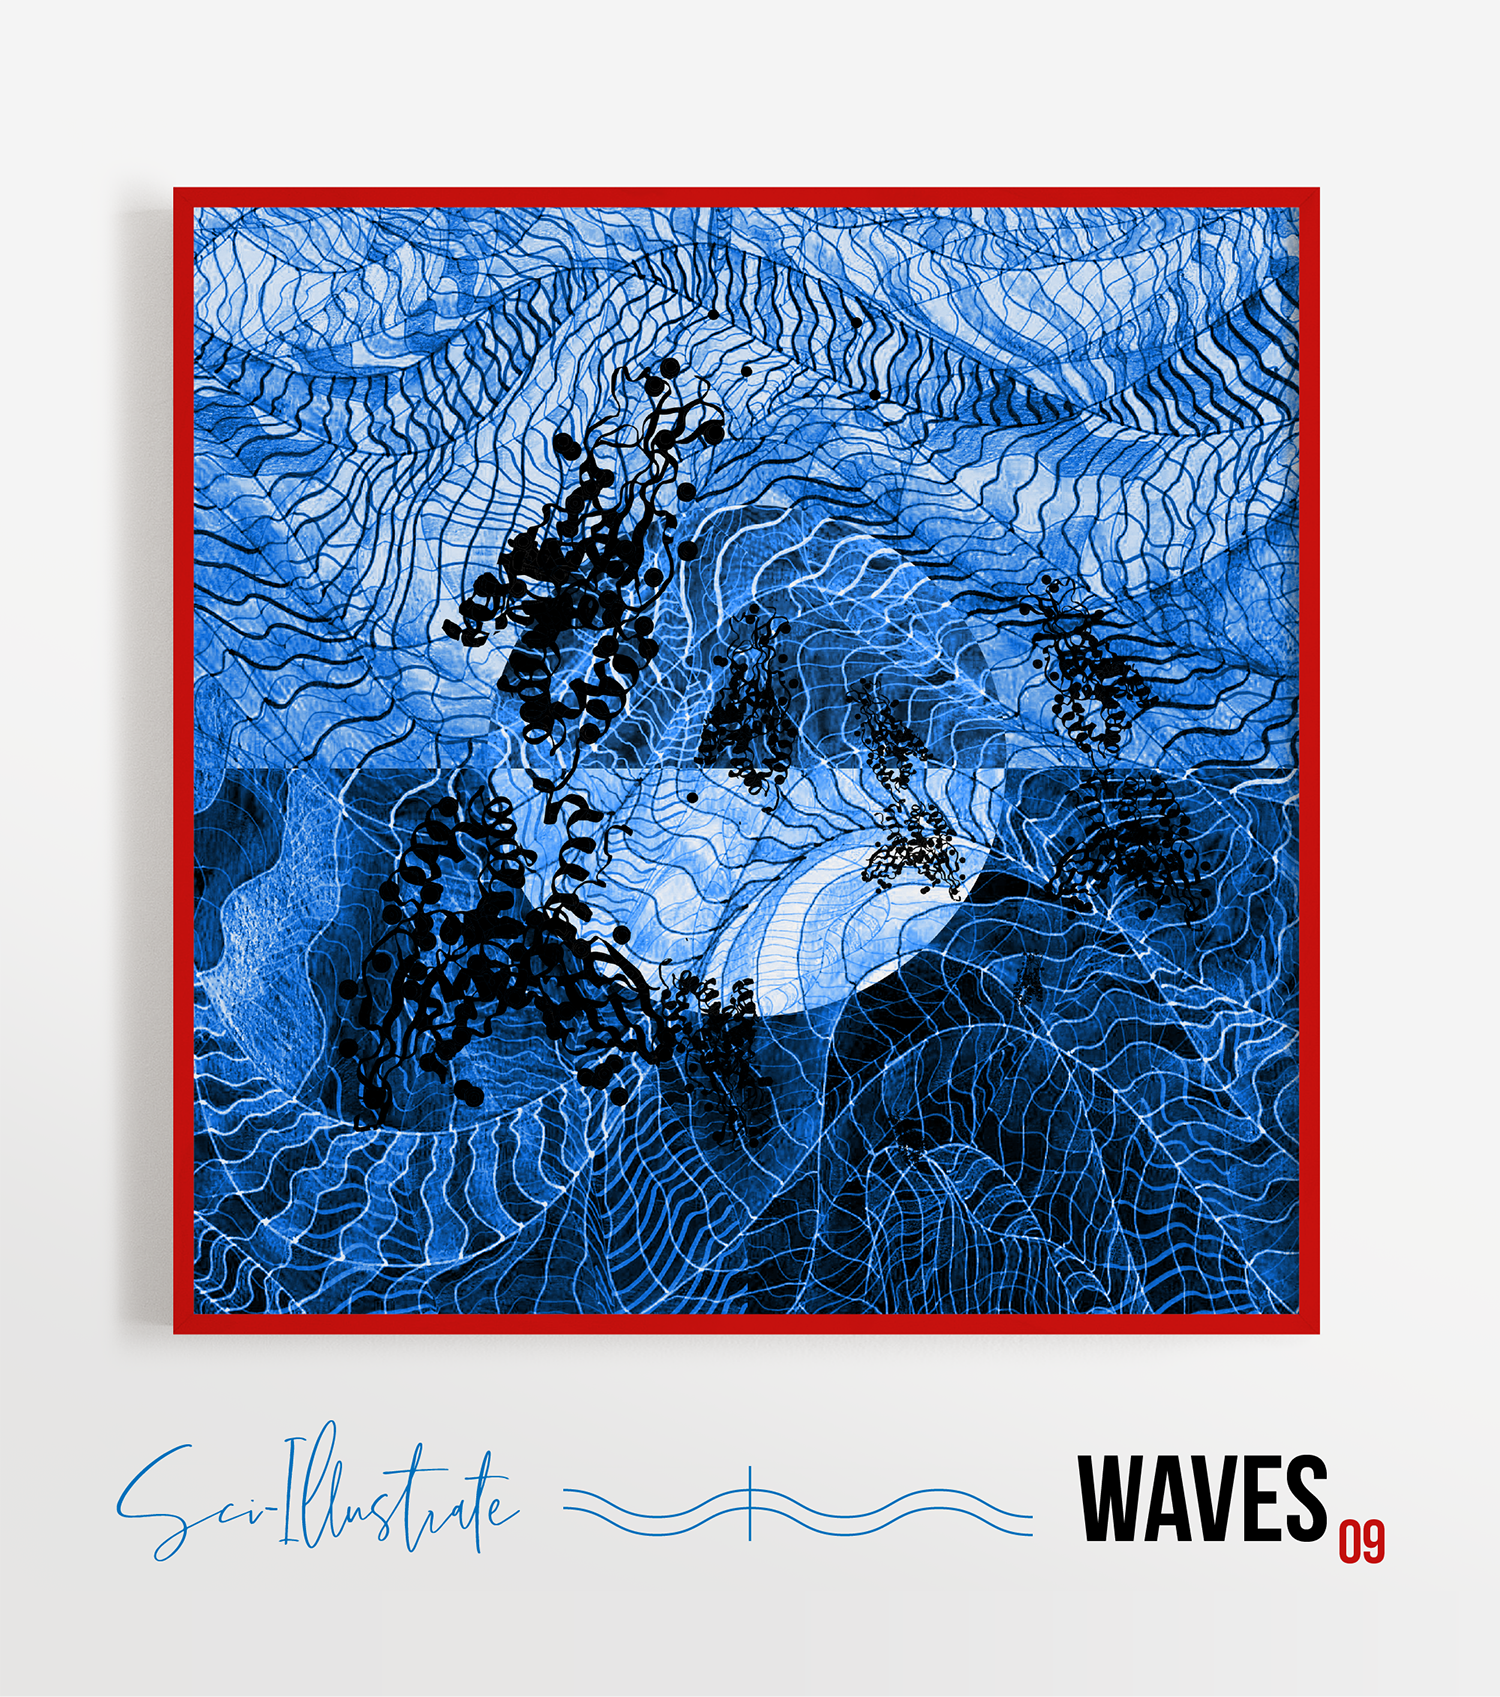 waves -SM 05-01 low res 2.png